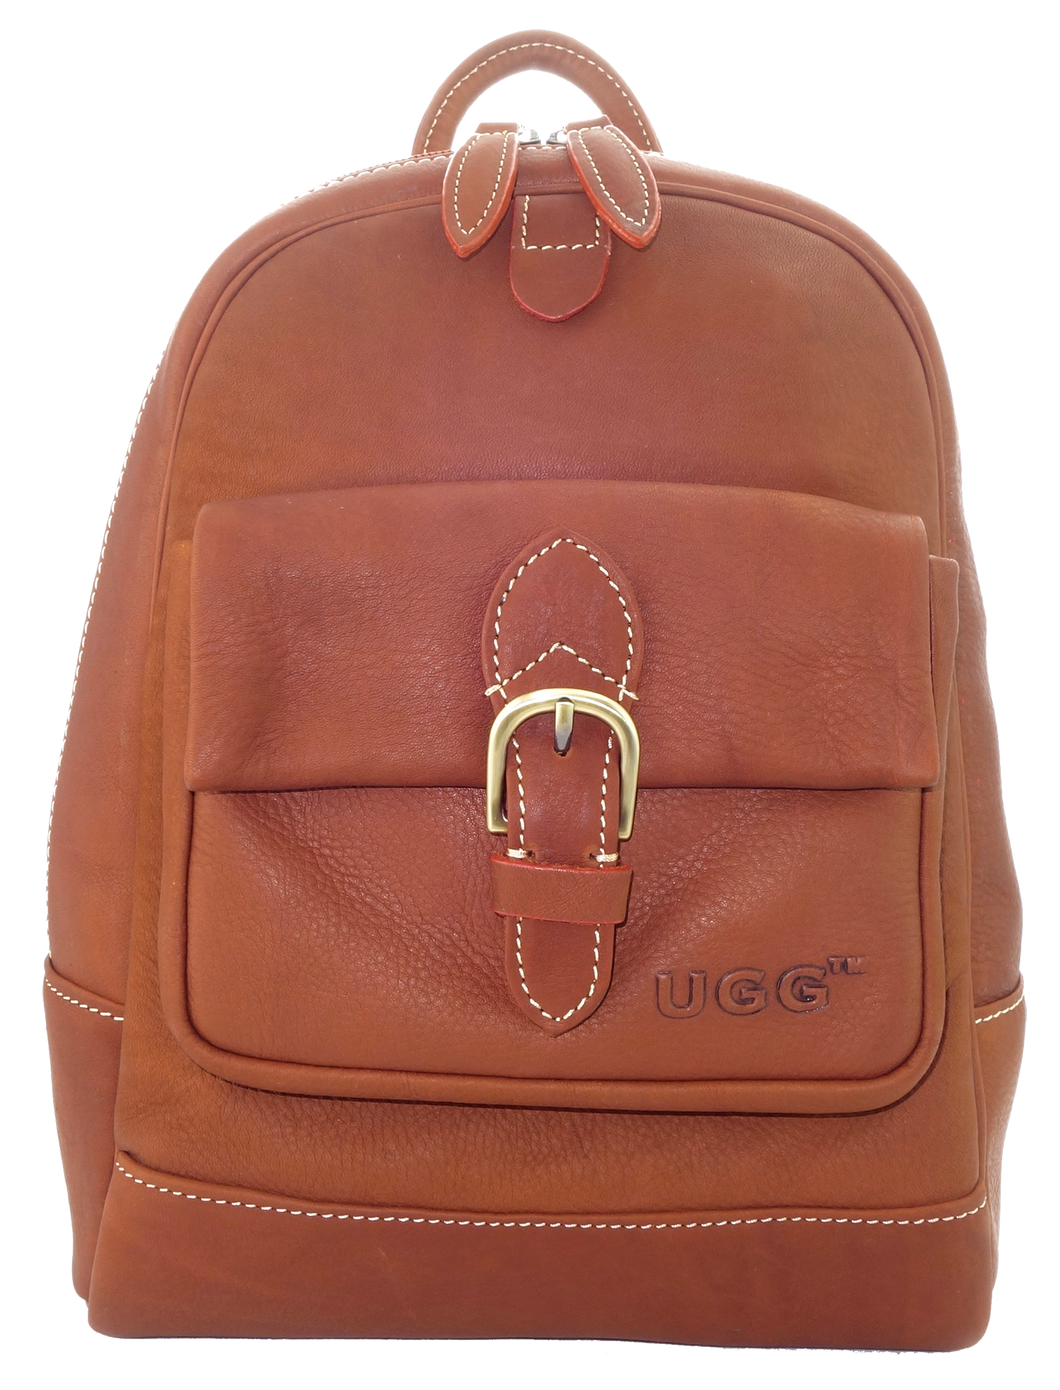 Lamb Leather Backpack - Tan